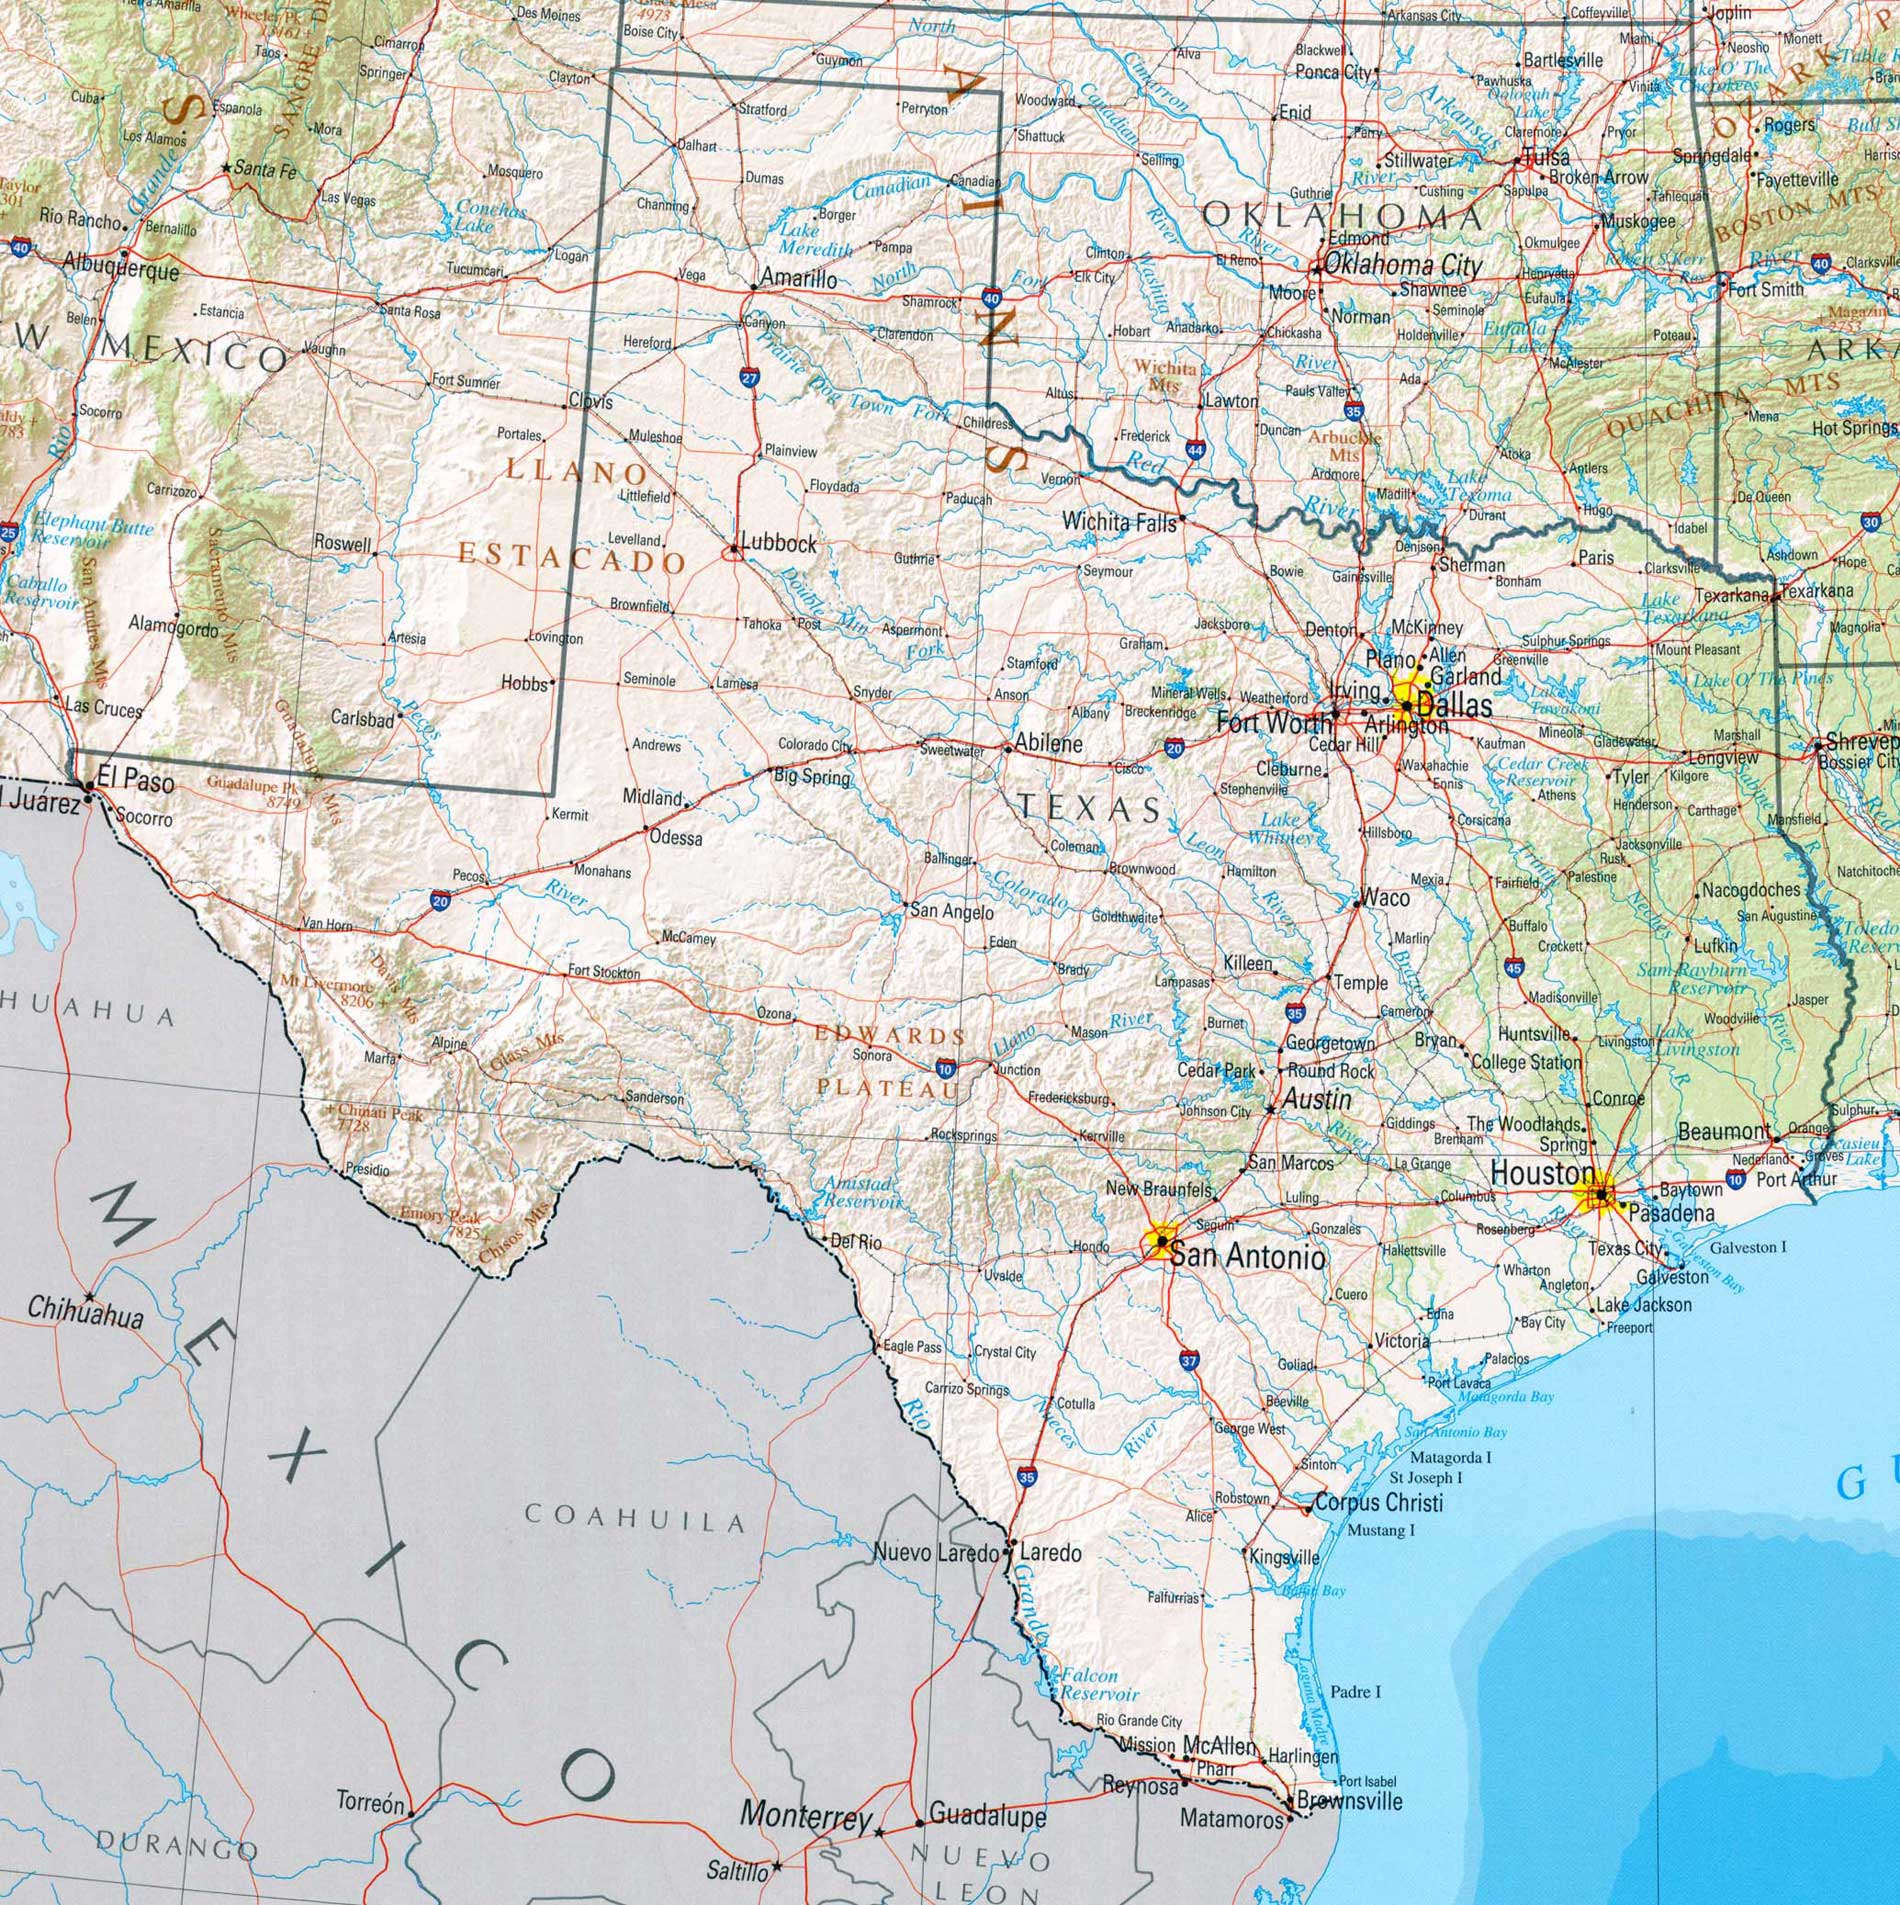 Texas Map 2002 large map